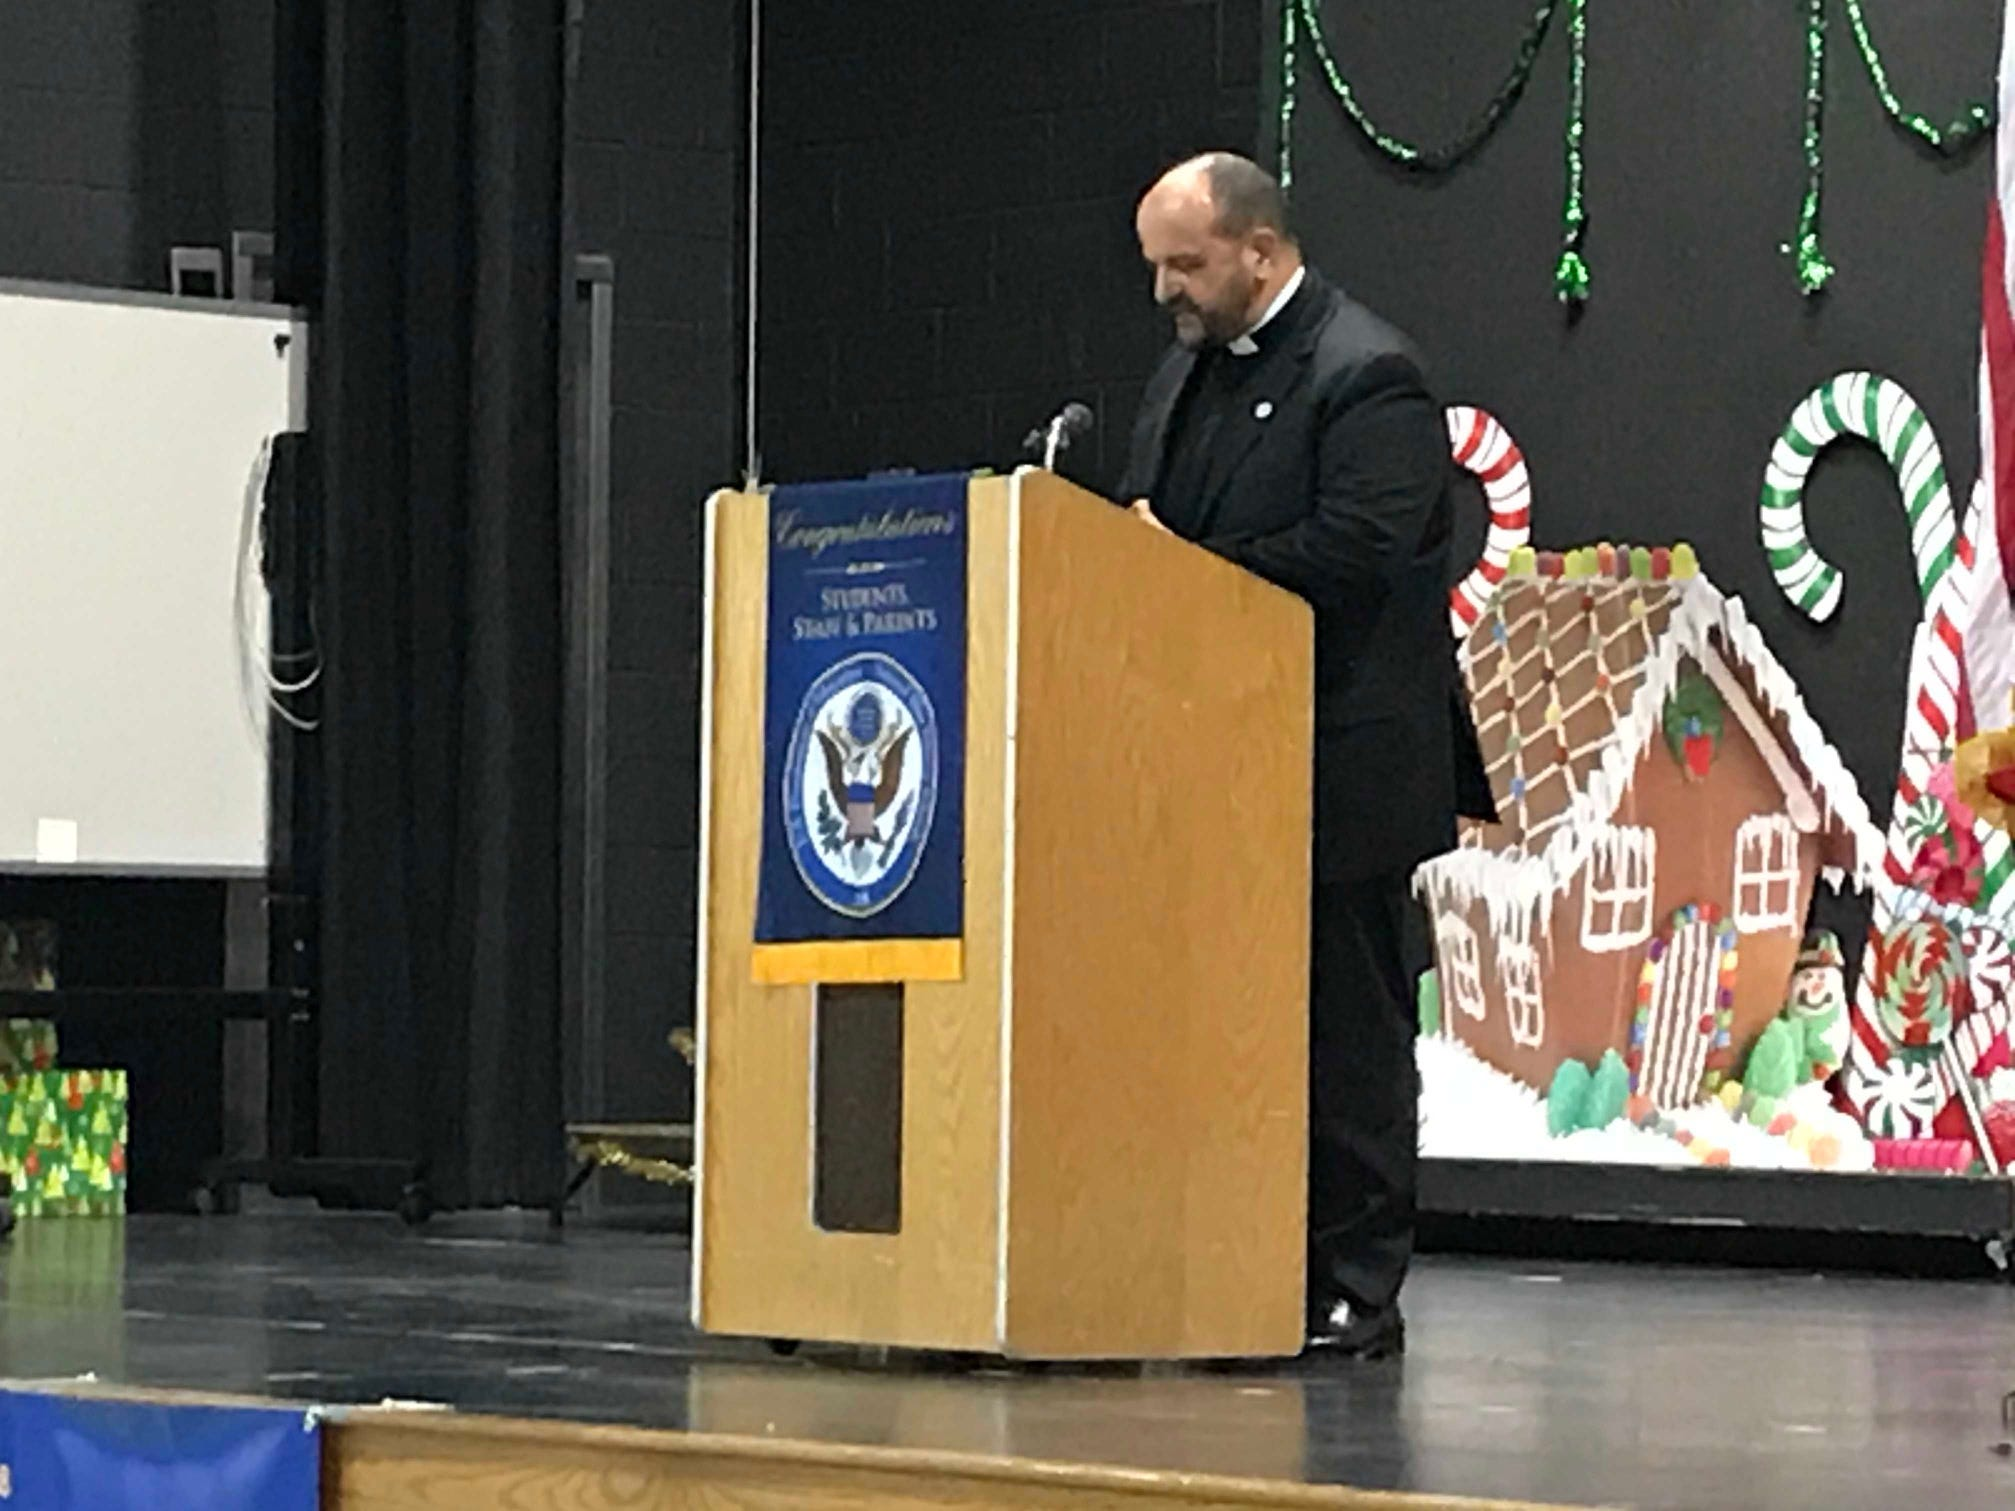 Saint HelenaSchool celebrated its recognition as a 2018 NationalBlue Ribbon School of Excellence with an assembly and the raising of the National Blue Ribbon flag.